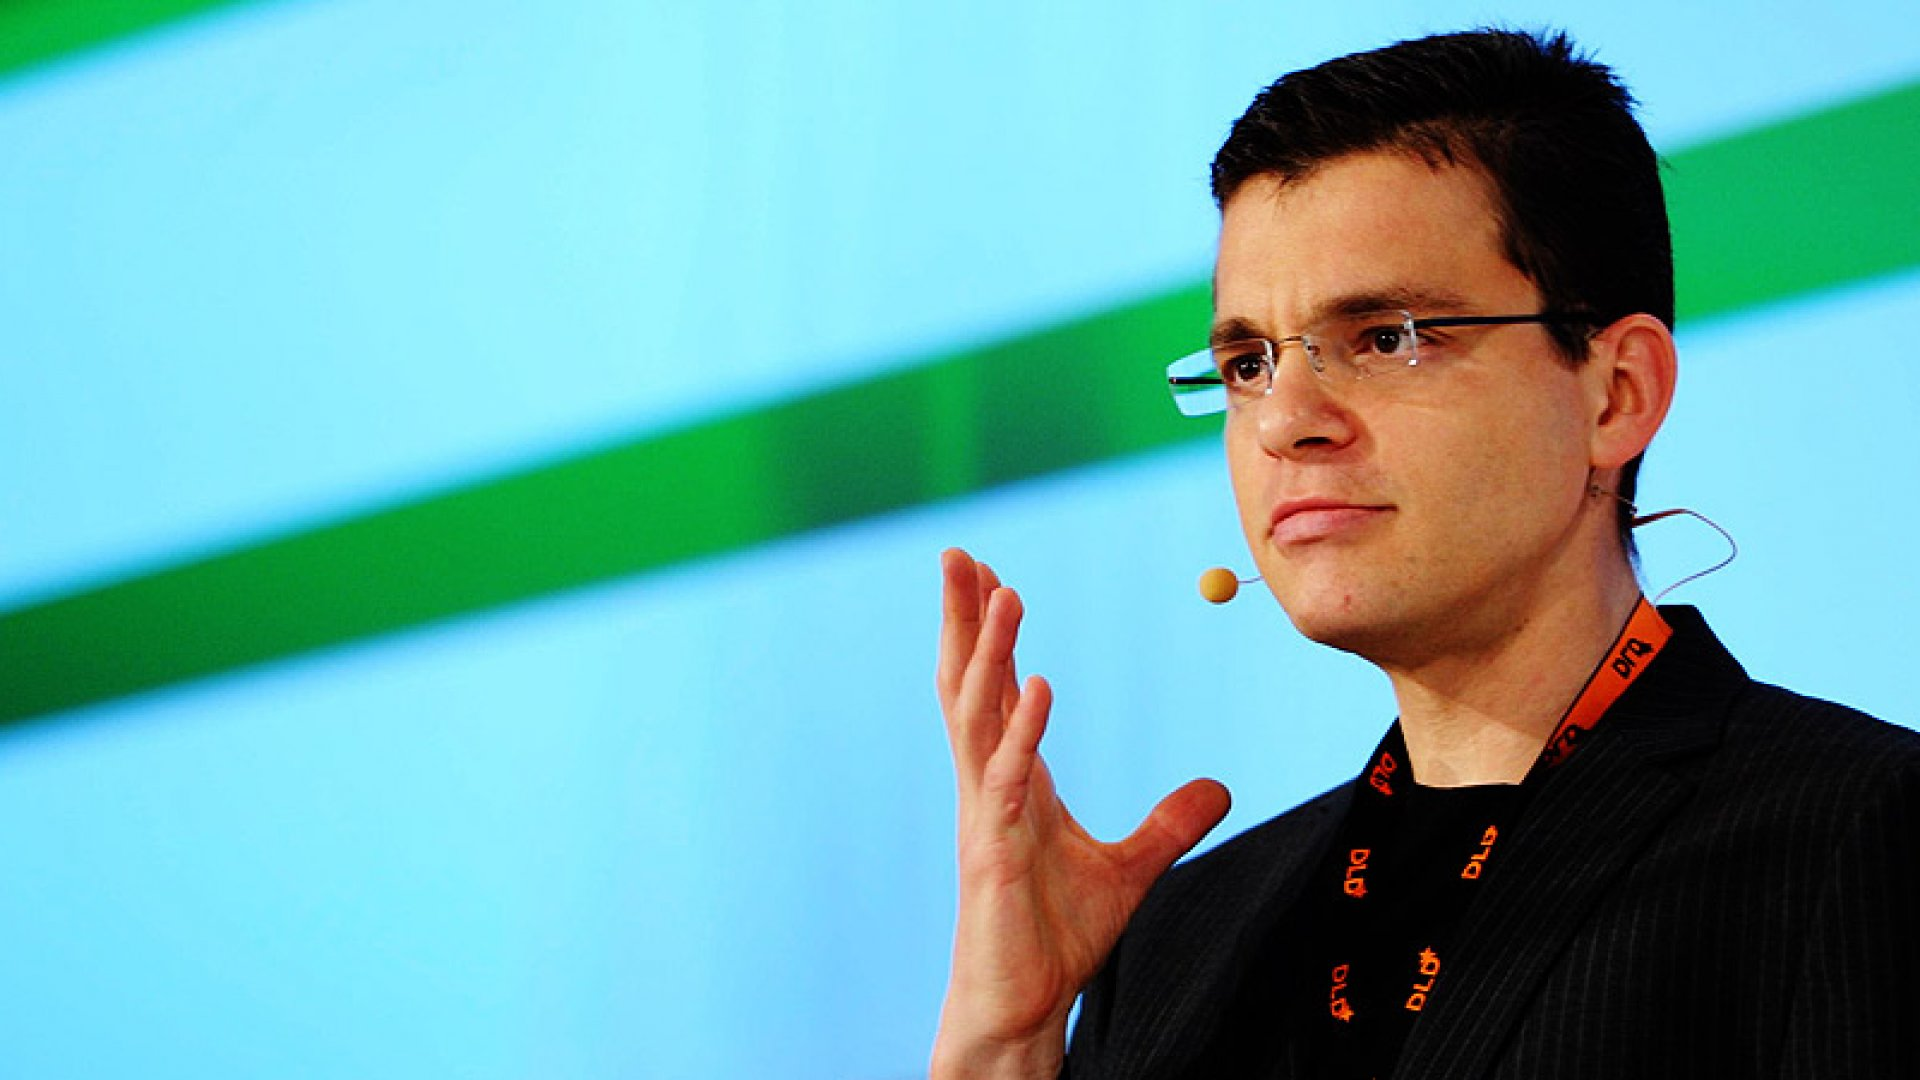 Max Levchin: Innovation Has Returned to the Valley